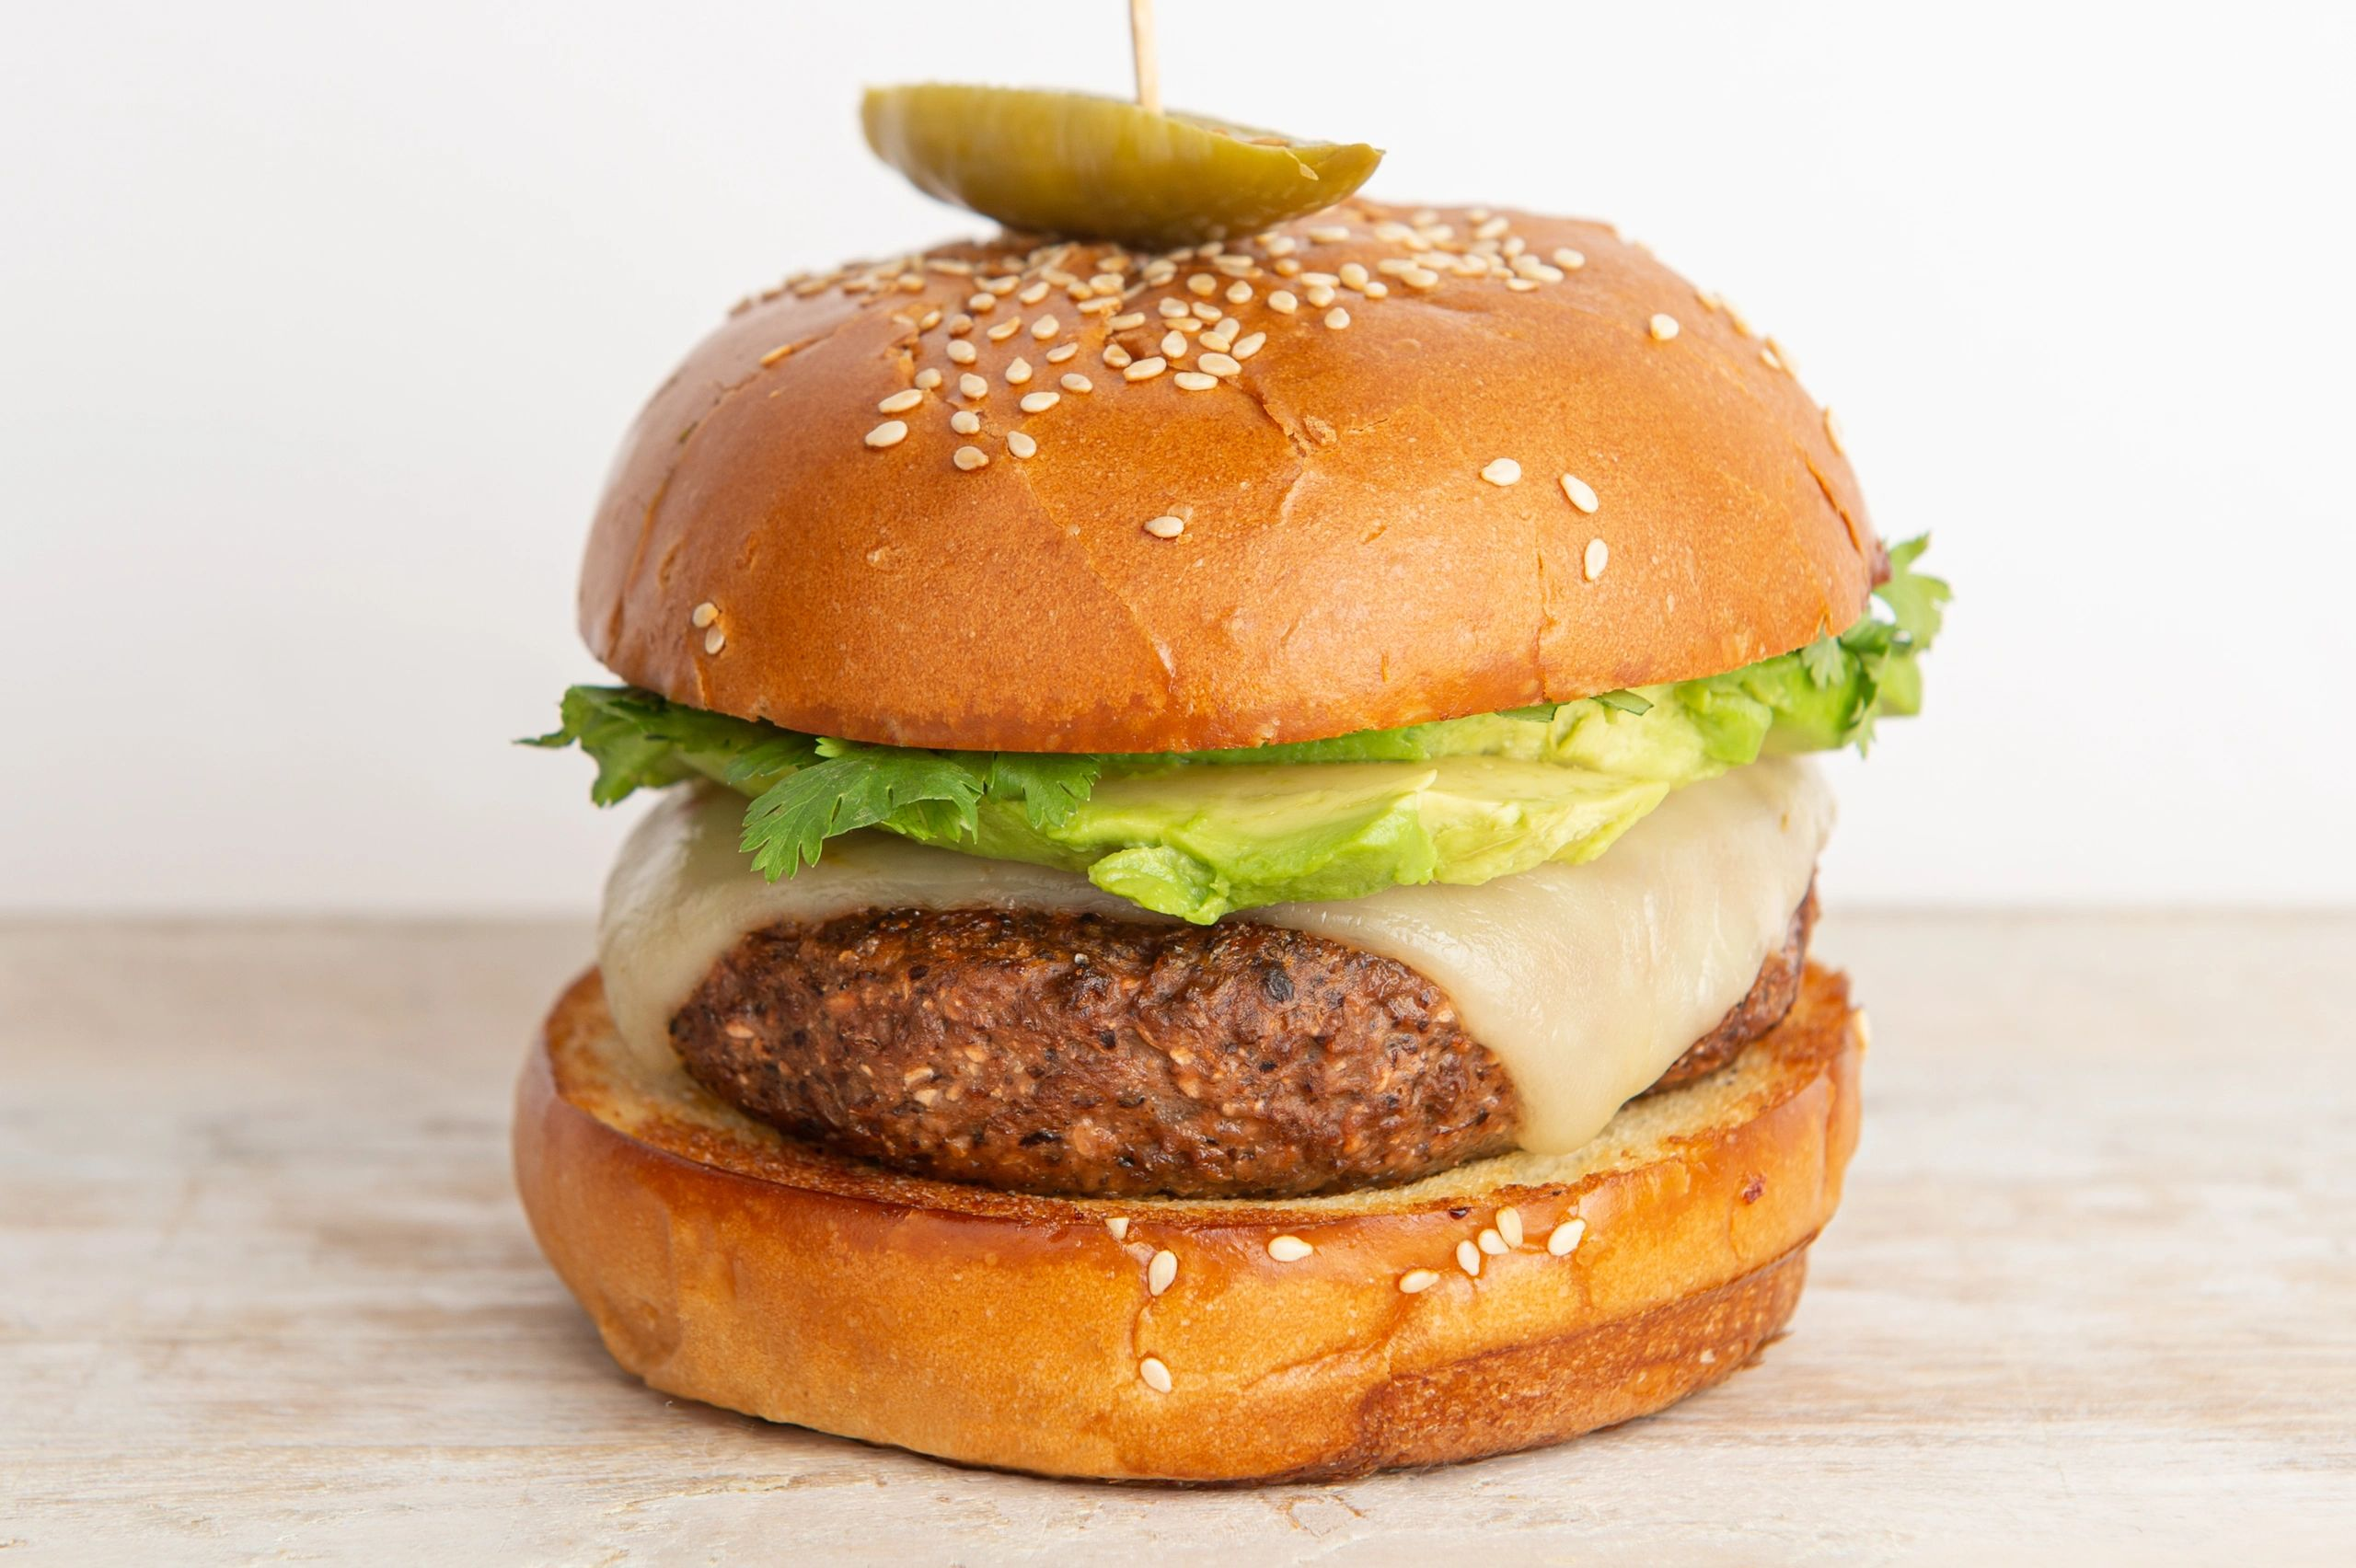 Nutritious pescatarian and flexitarian burger alternative with ocean-based protein